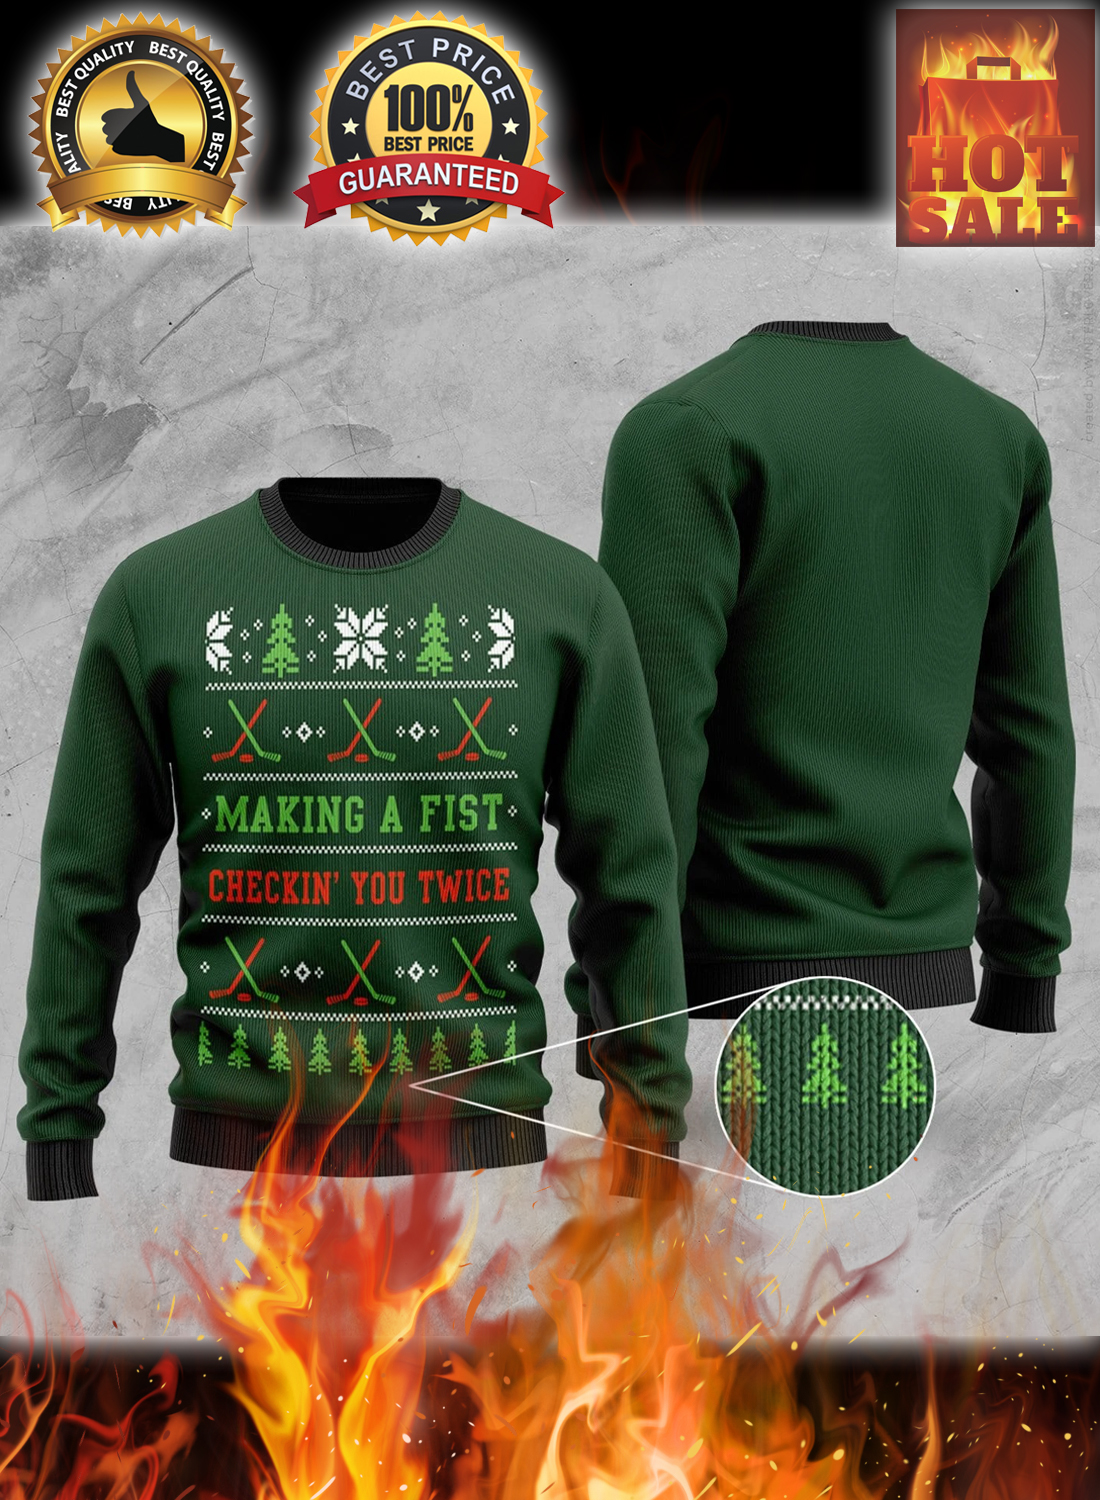 Hockey making a first checking you twice christmas sweater